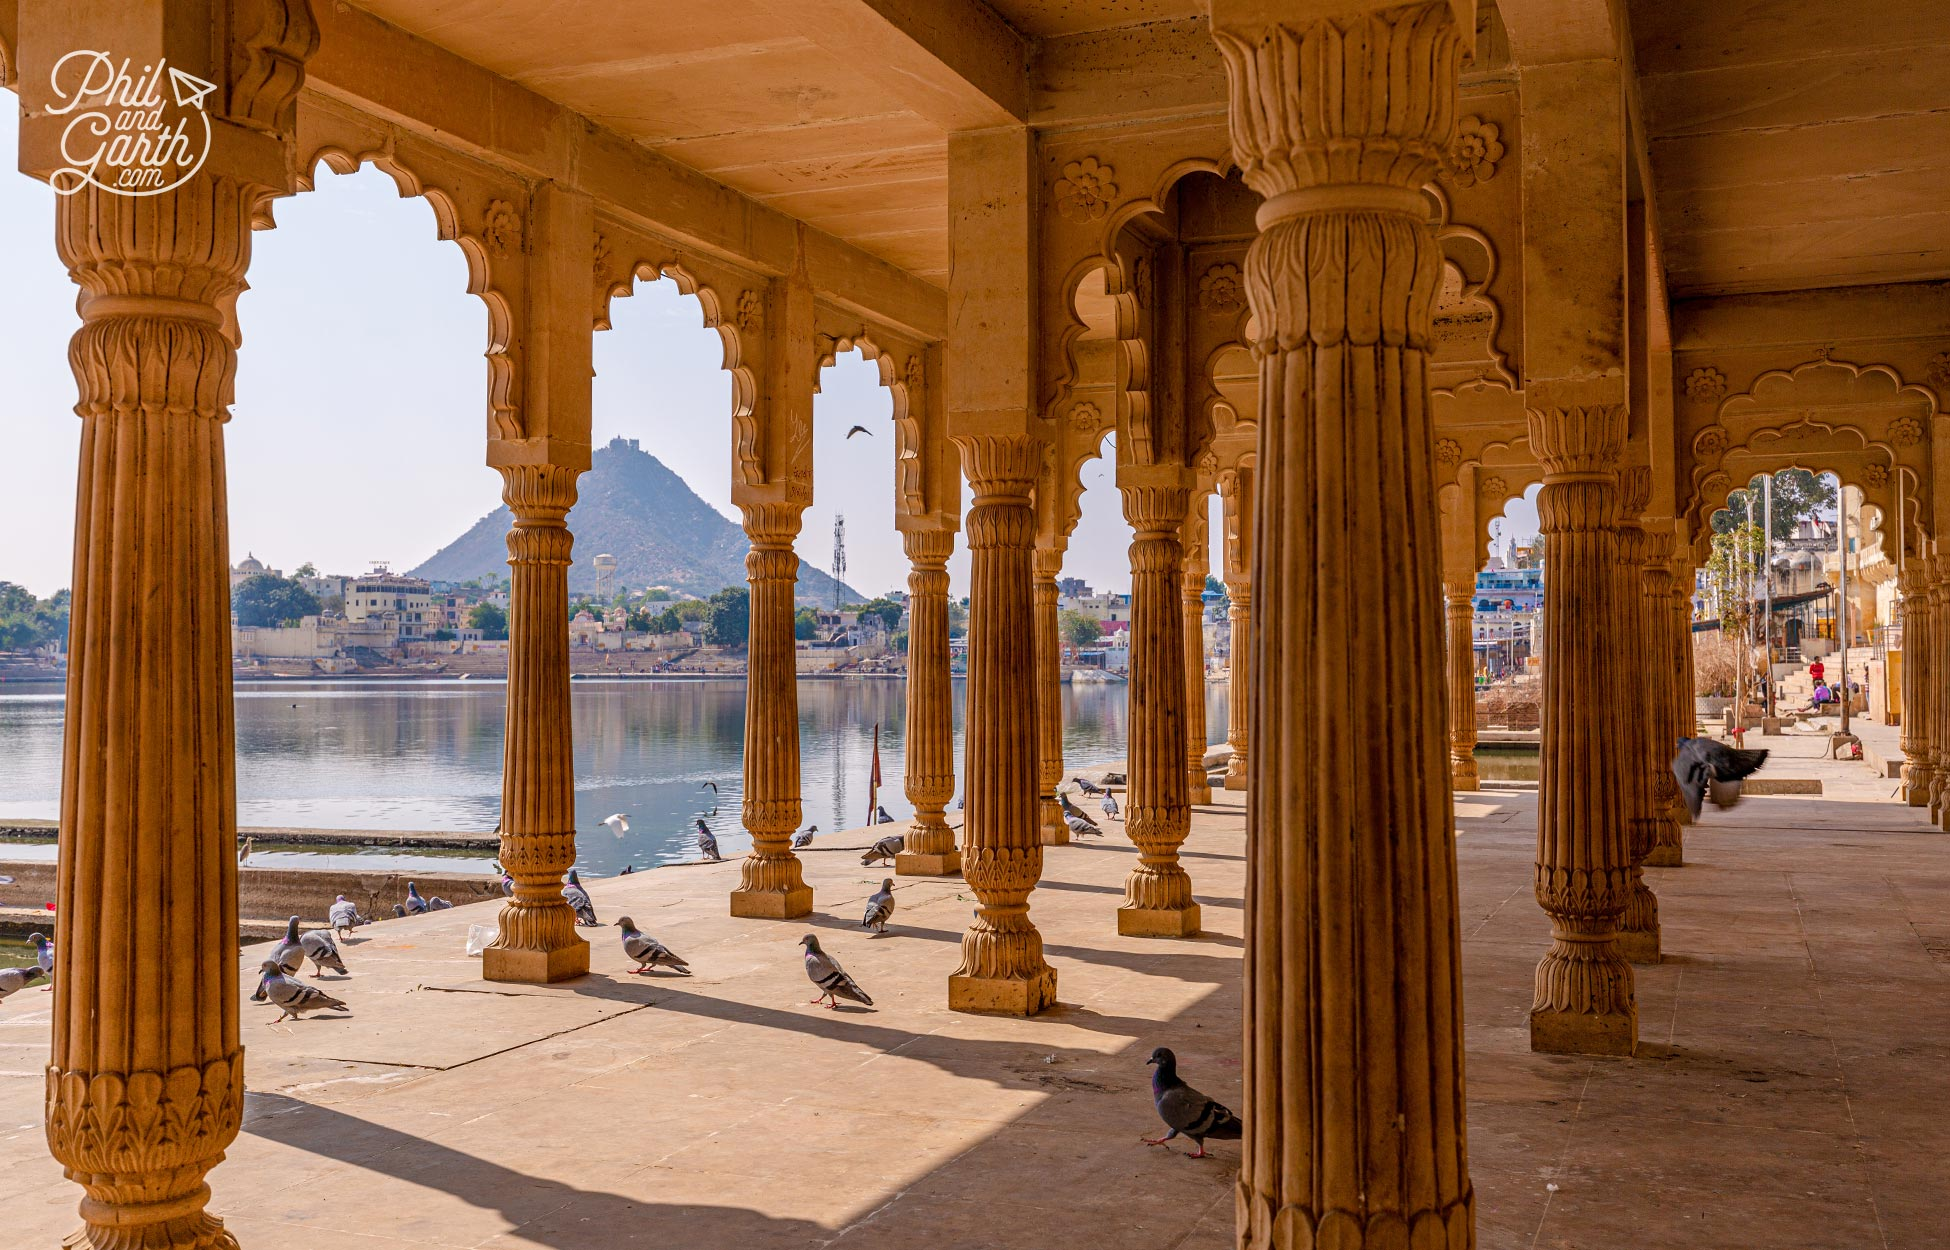 Photographers will love all the opportunities in Pushkar